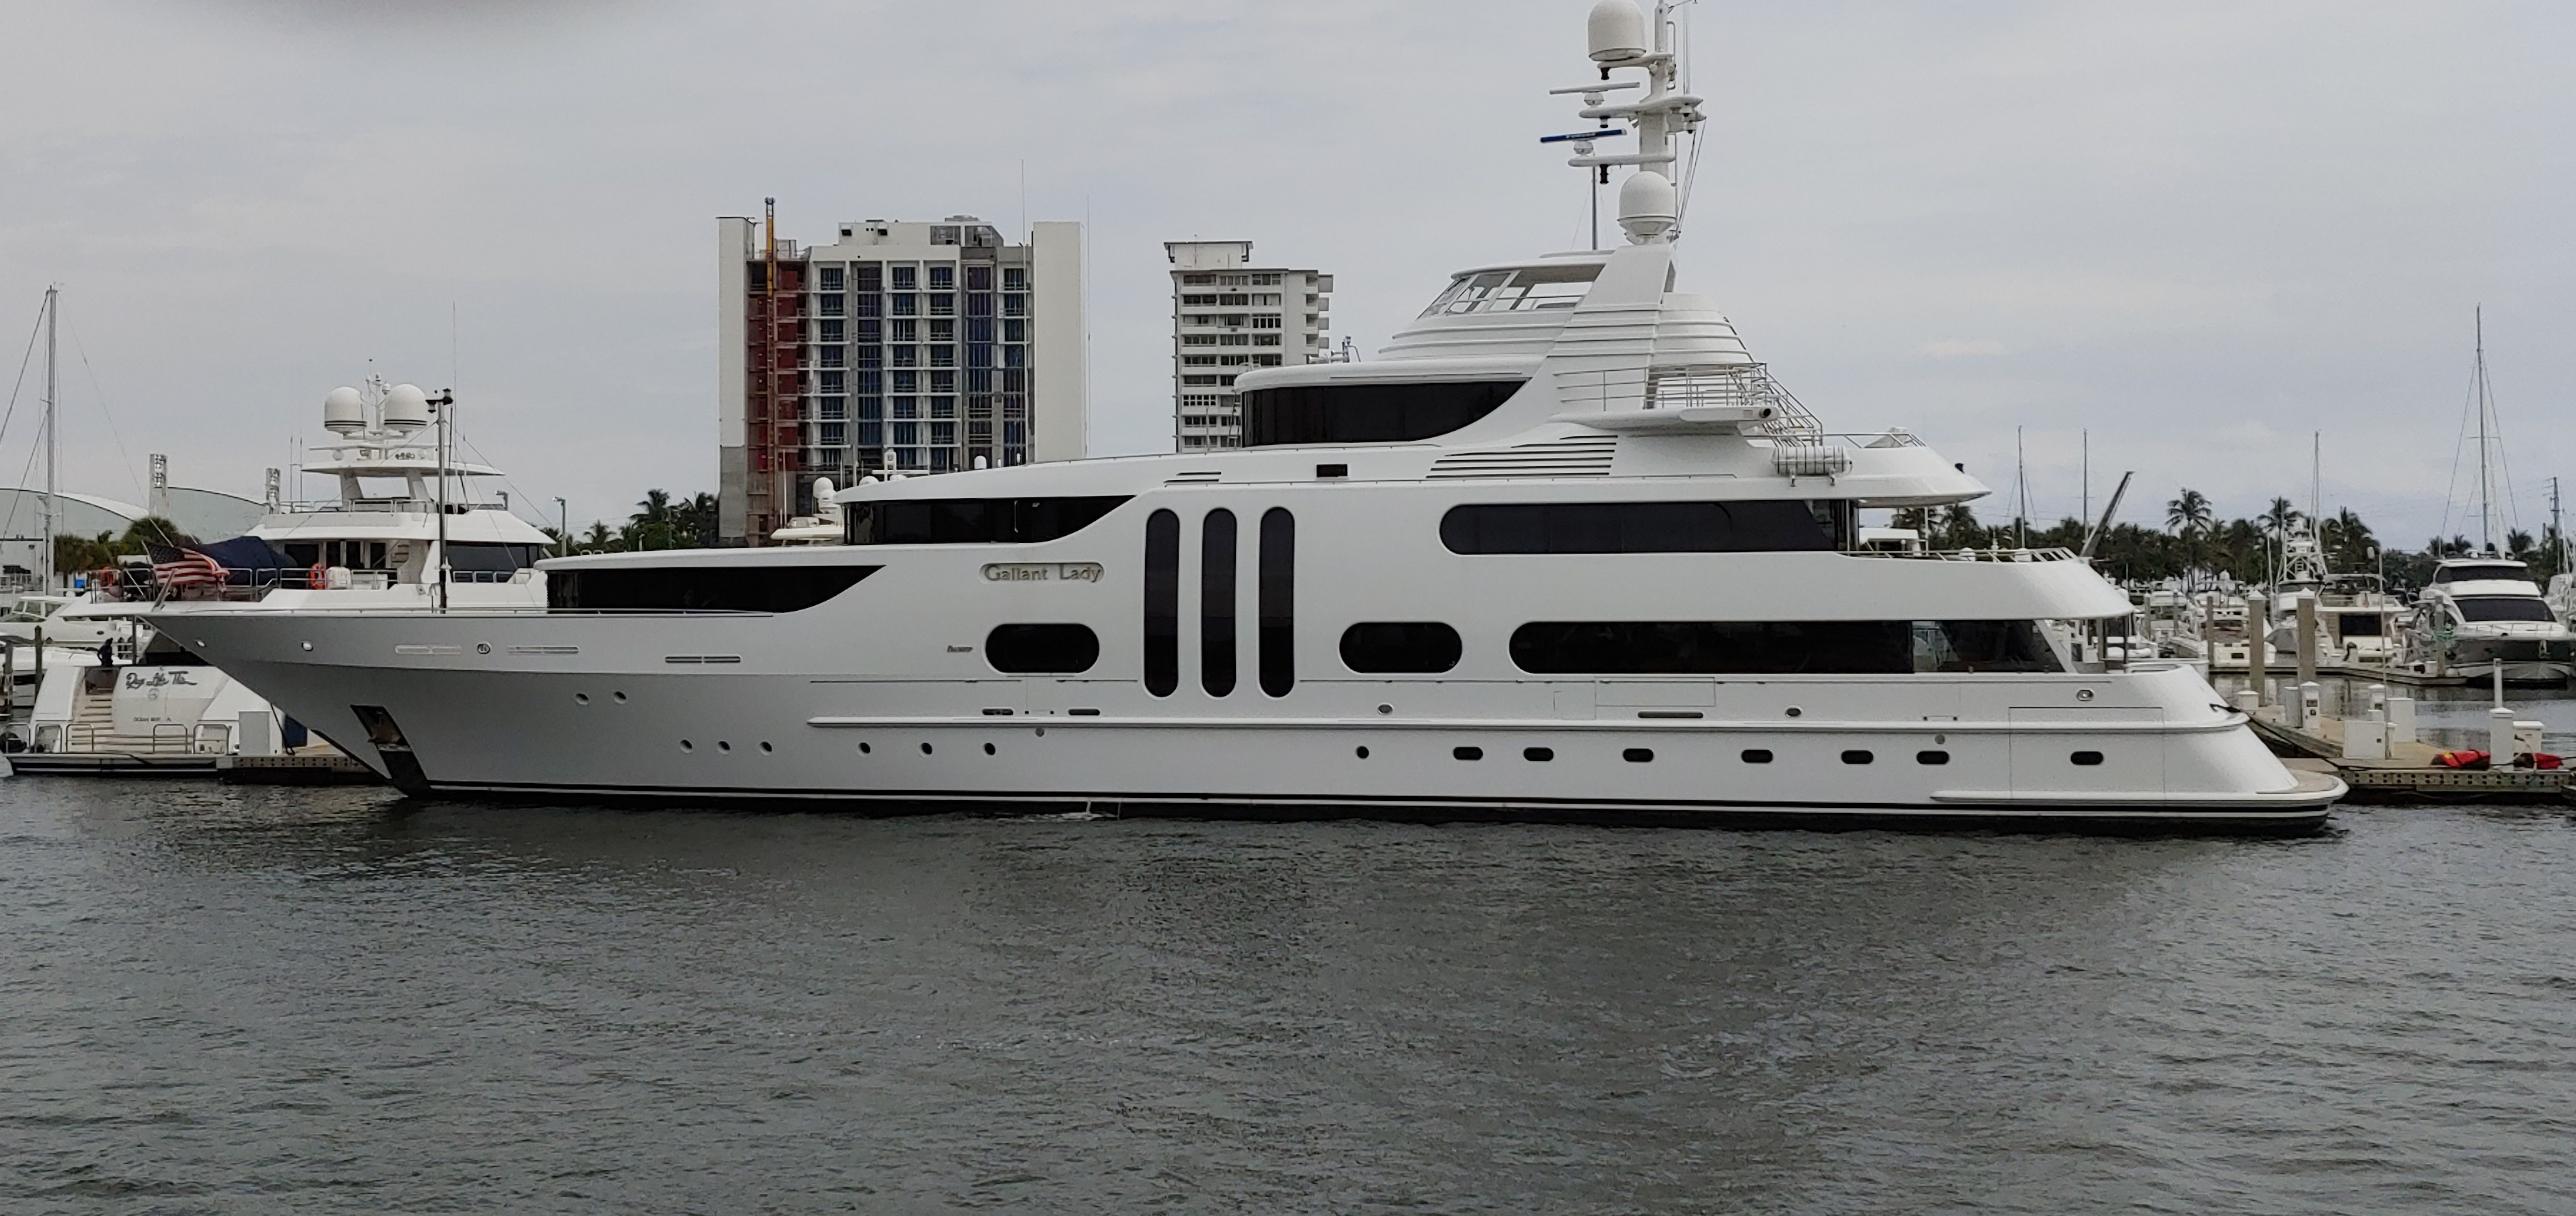 Yacht styles of the rich and famous